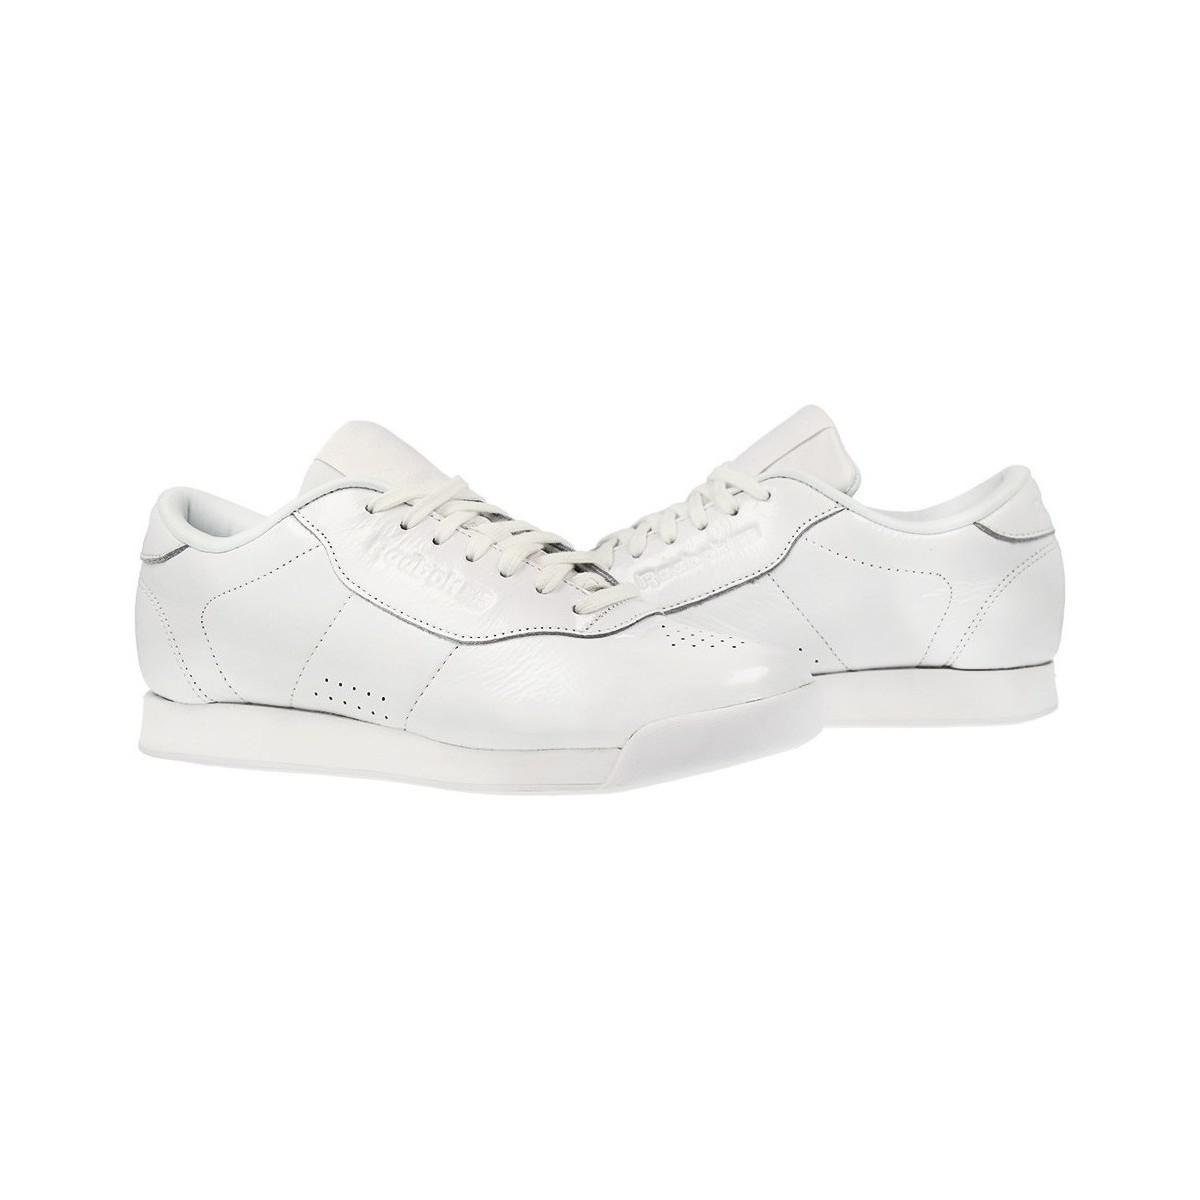 356377e245138 Reebok W Princess Iridescent Women s Shoes (trainers) In White in ...